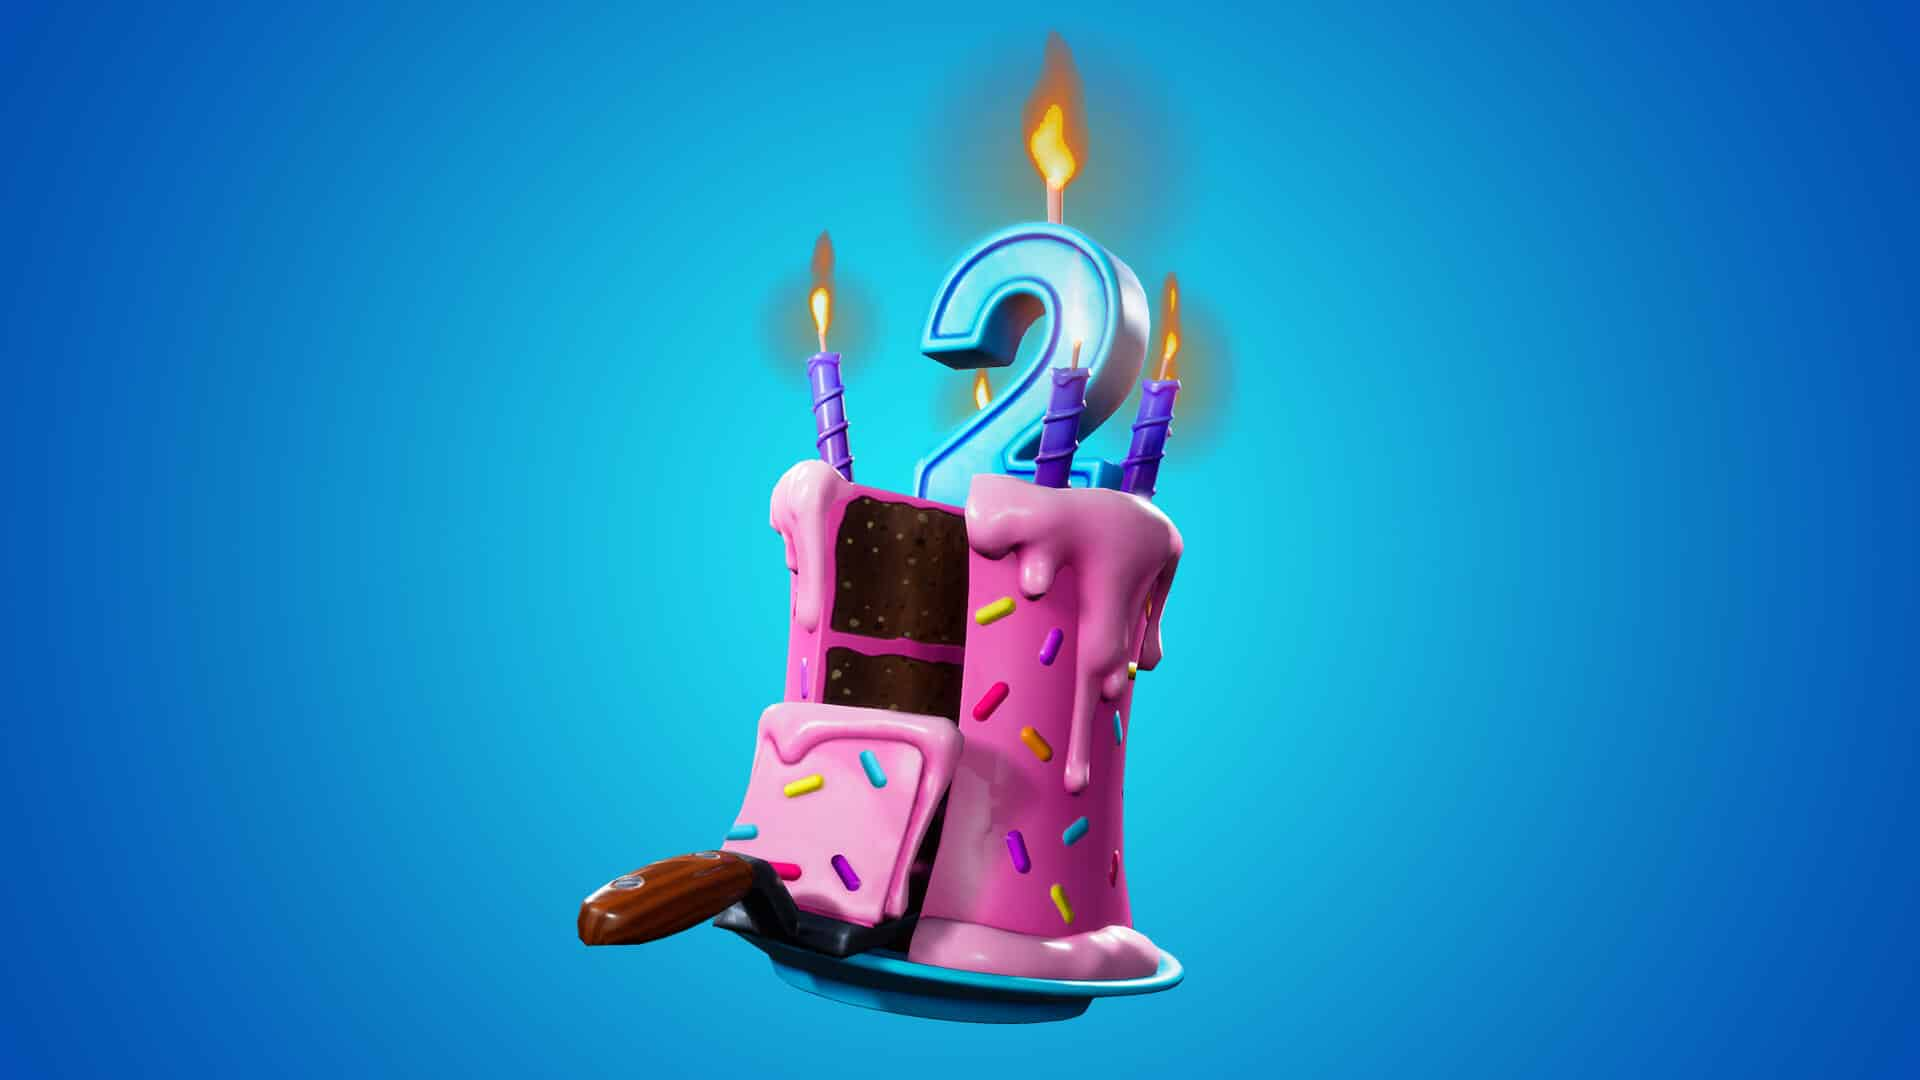 Fortnite 2nd Birthday Cake